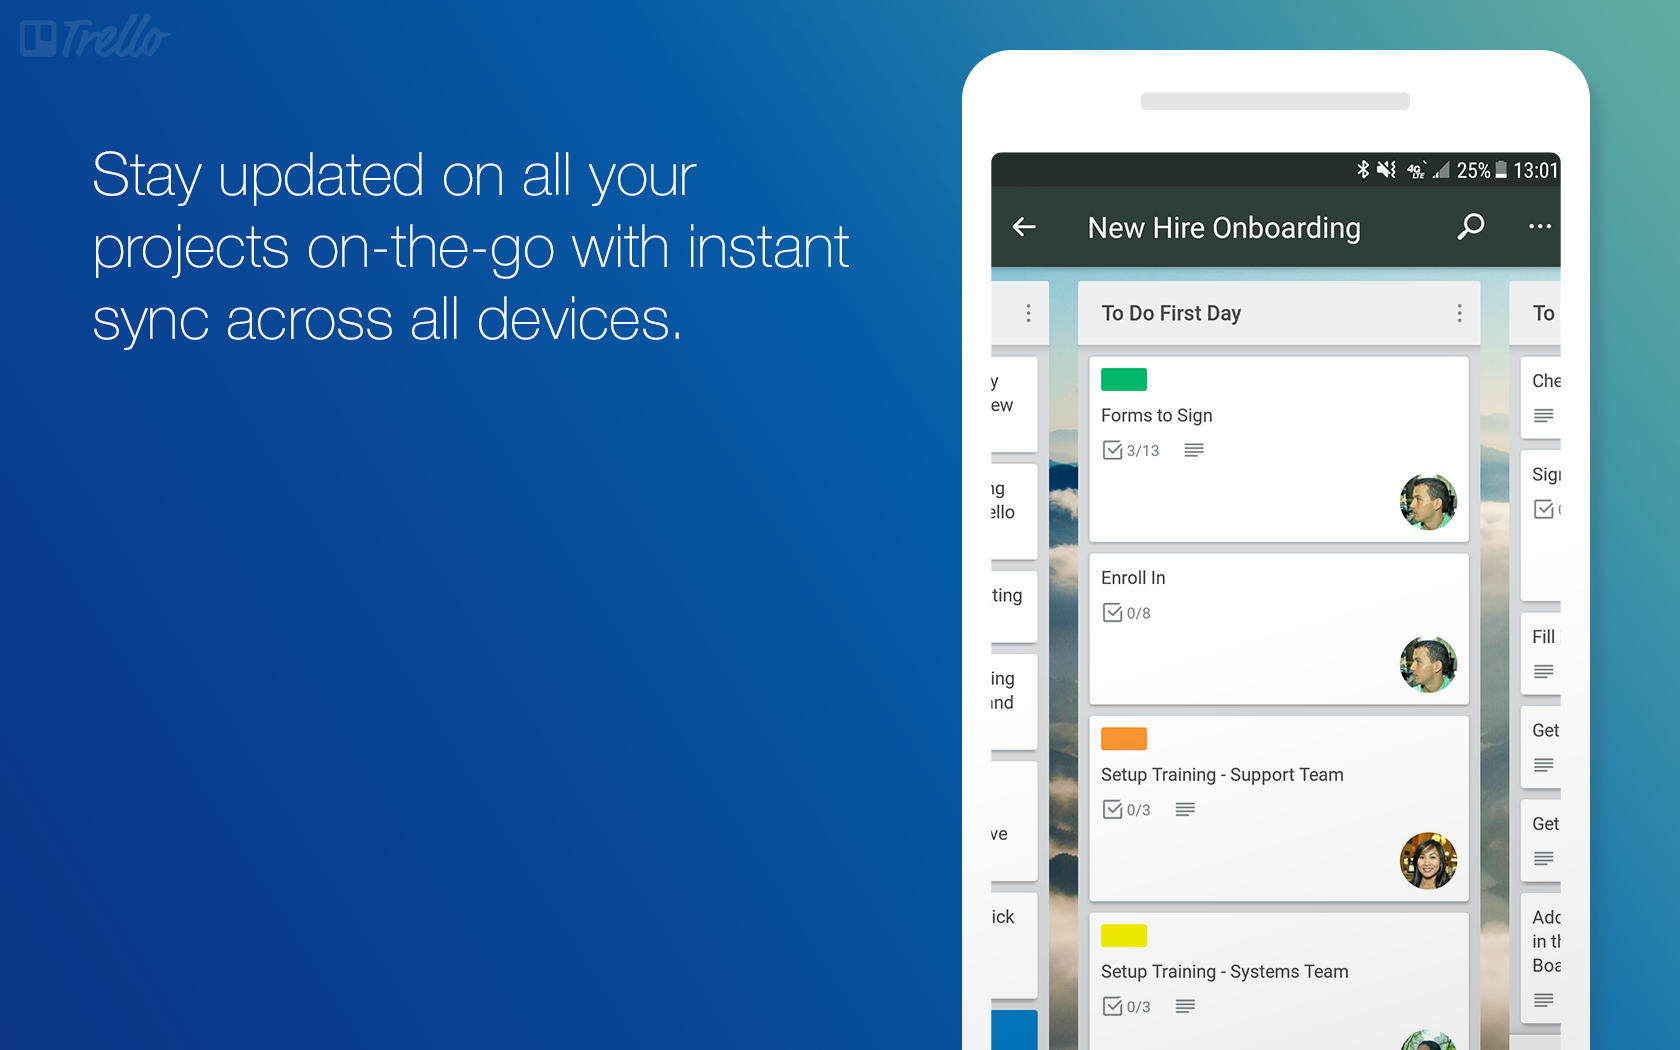 Trello can be accessed across multiple devices, with instant data sync